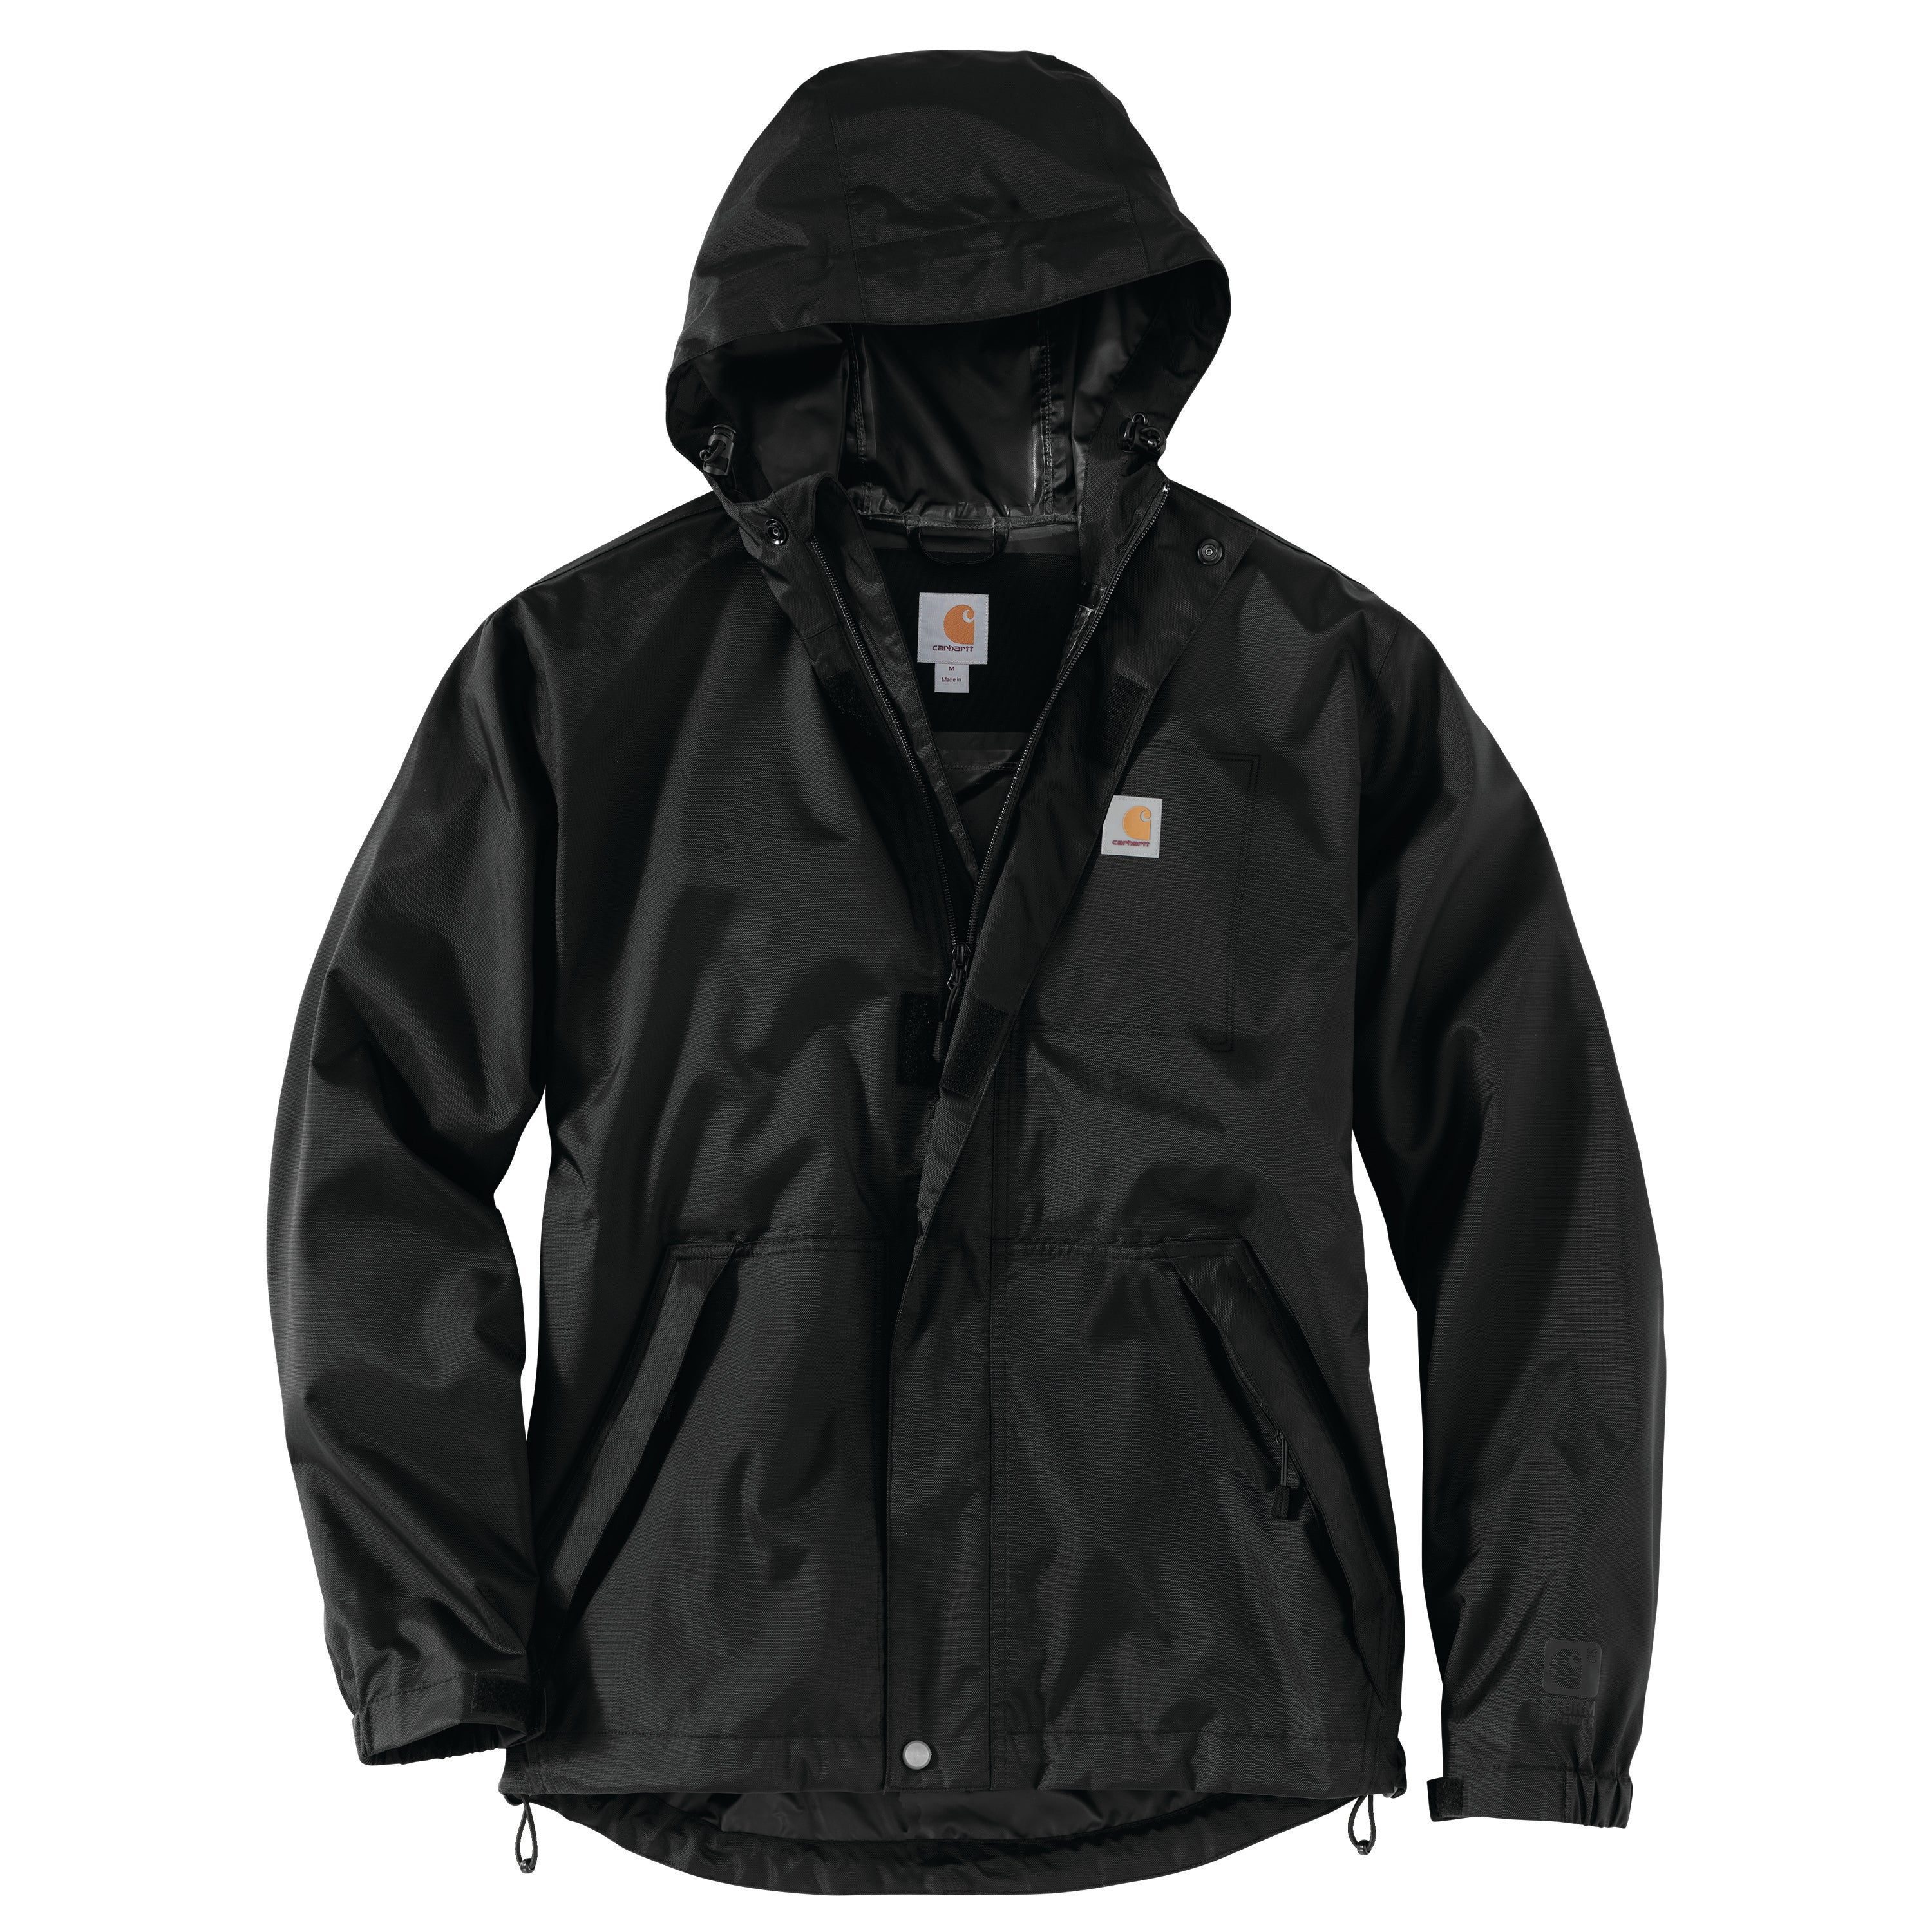 'Carhartt' Men's Dry Harbor WP Hooded Jacket - Black